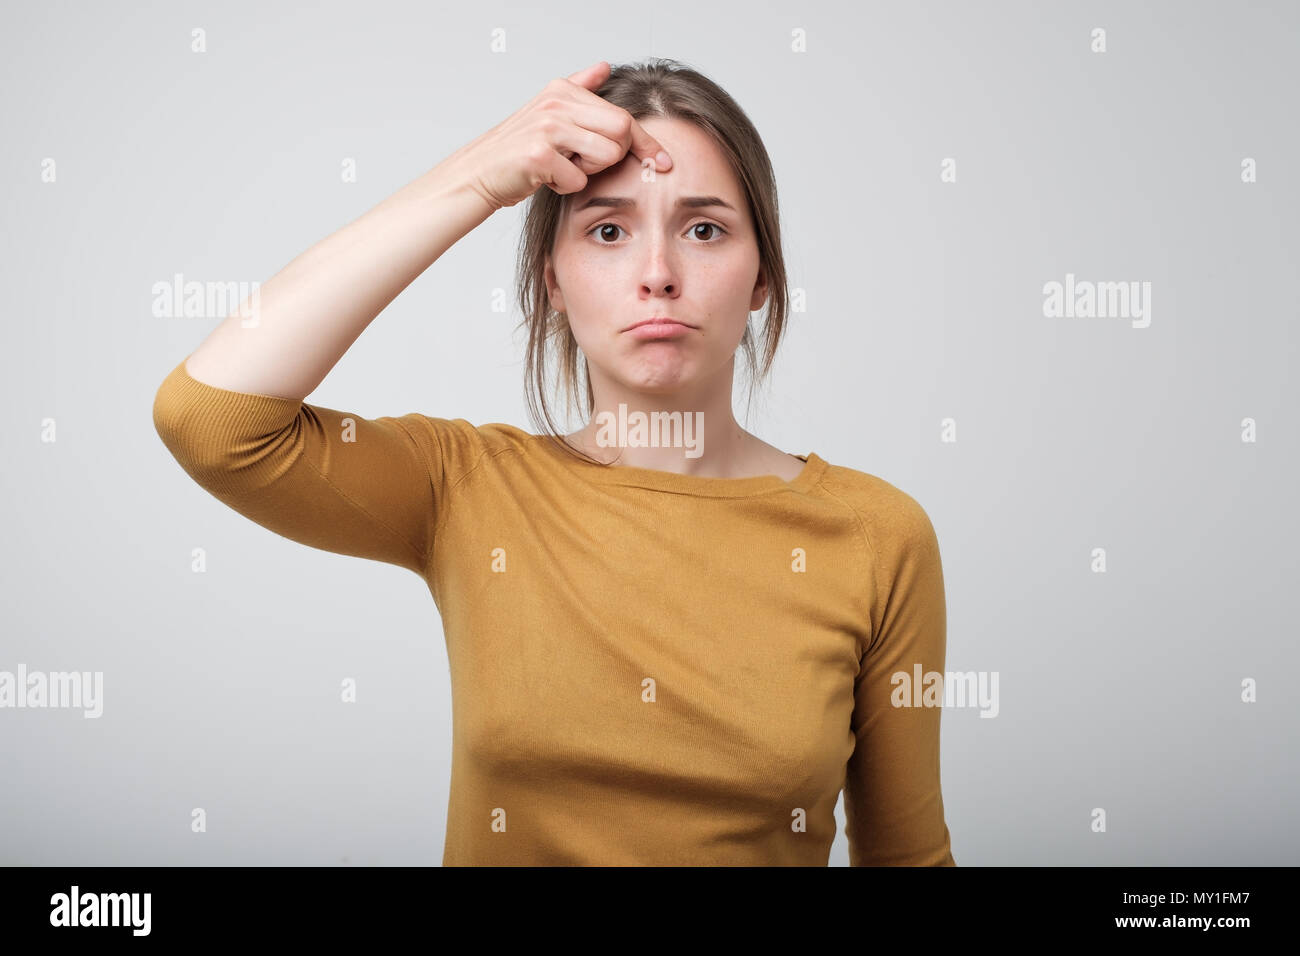 Young disappointed woman looking at camera. - Stock Image